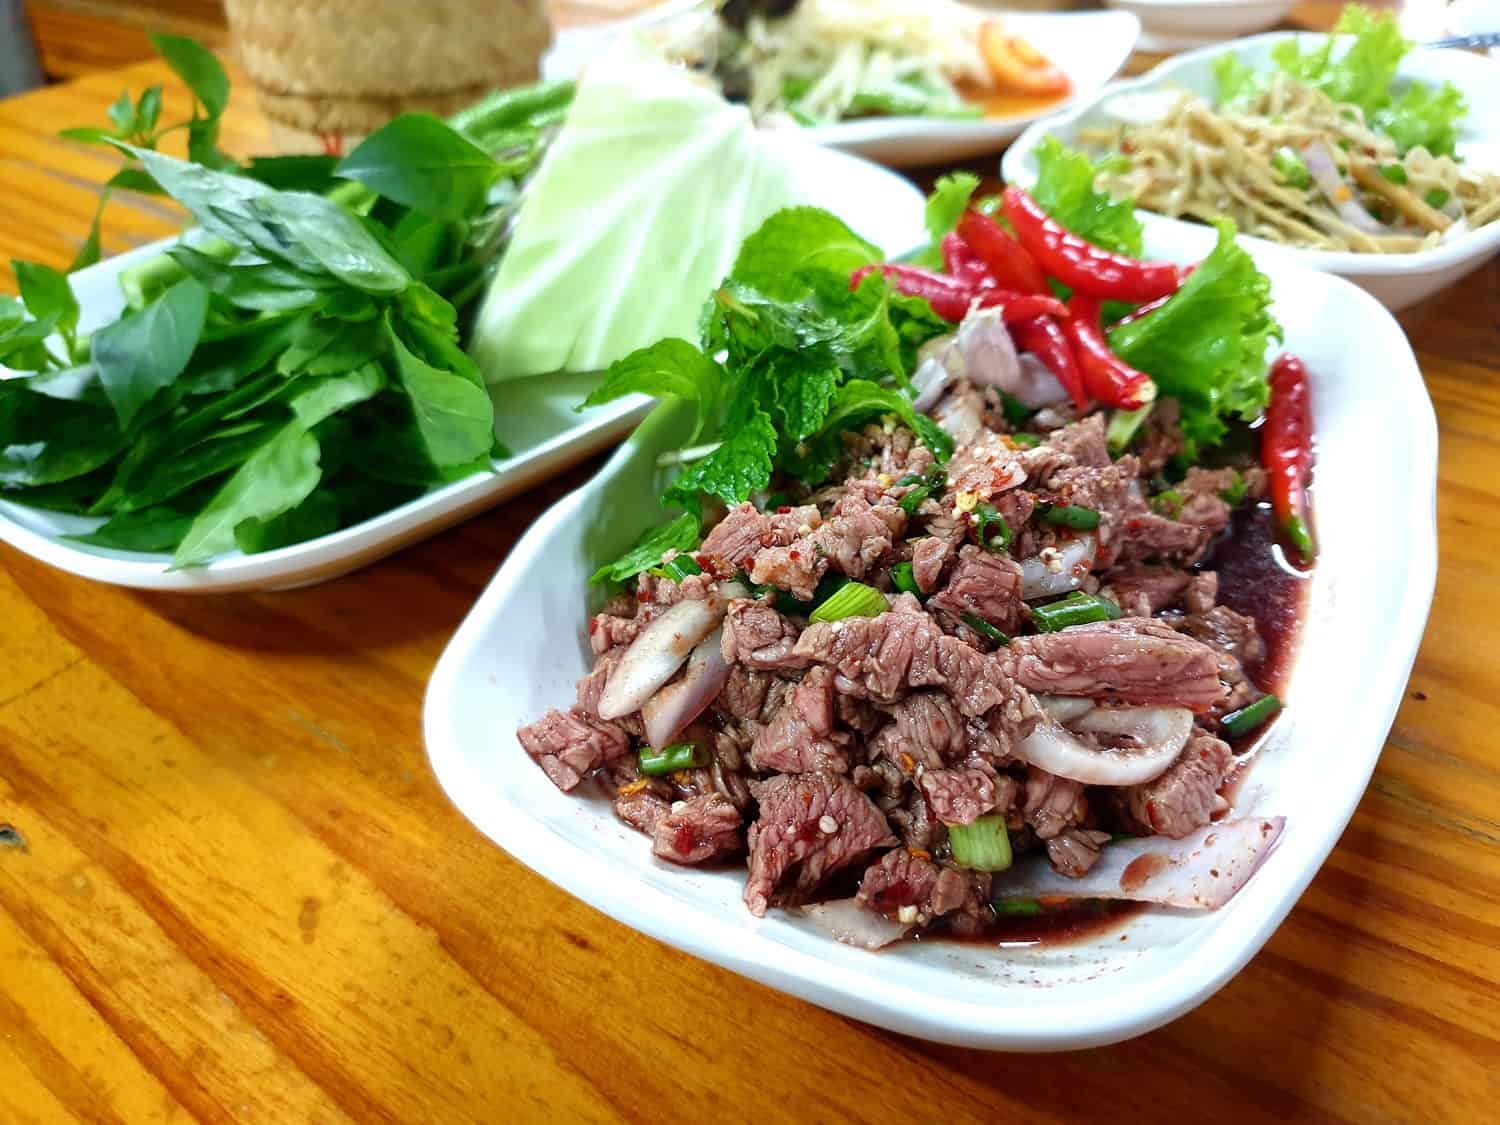 larb vs nam tok minced meat salad comparison